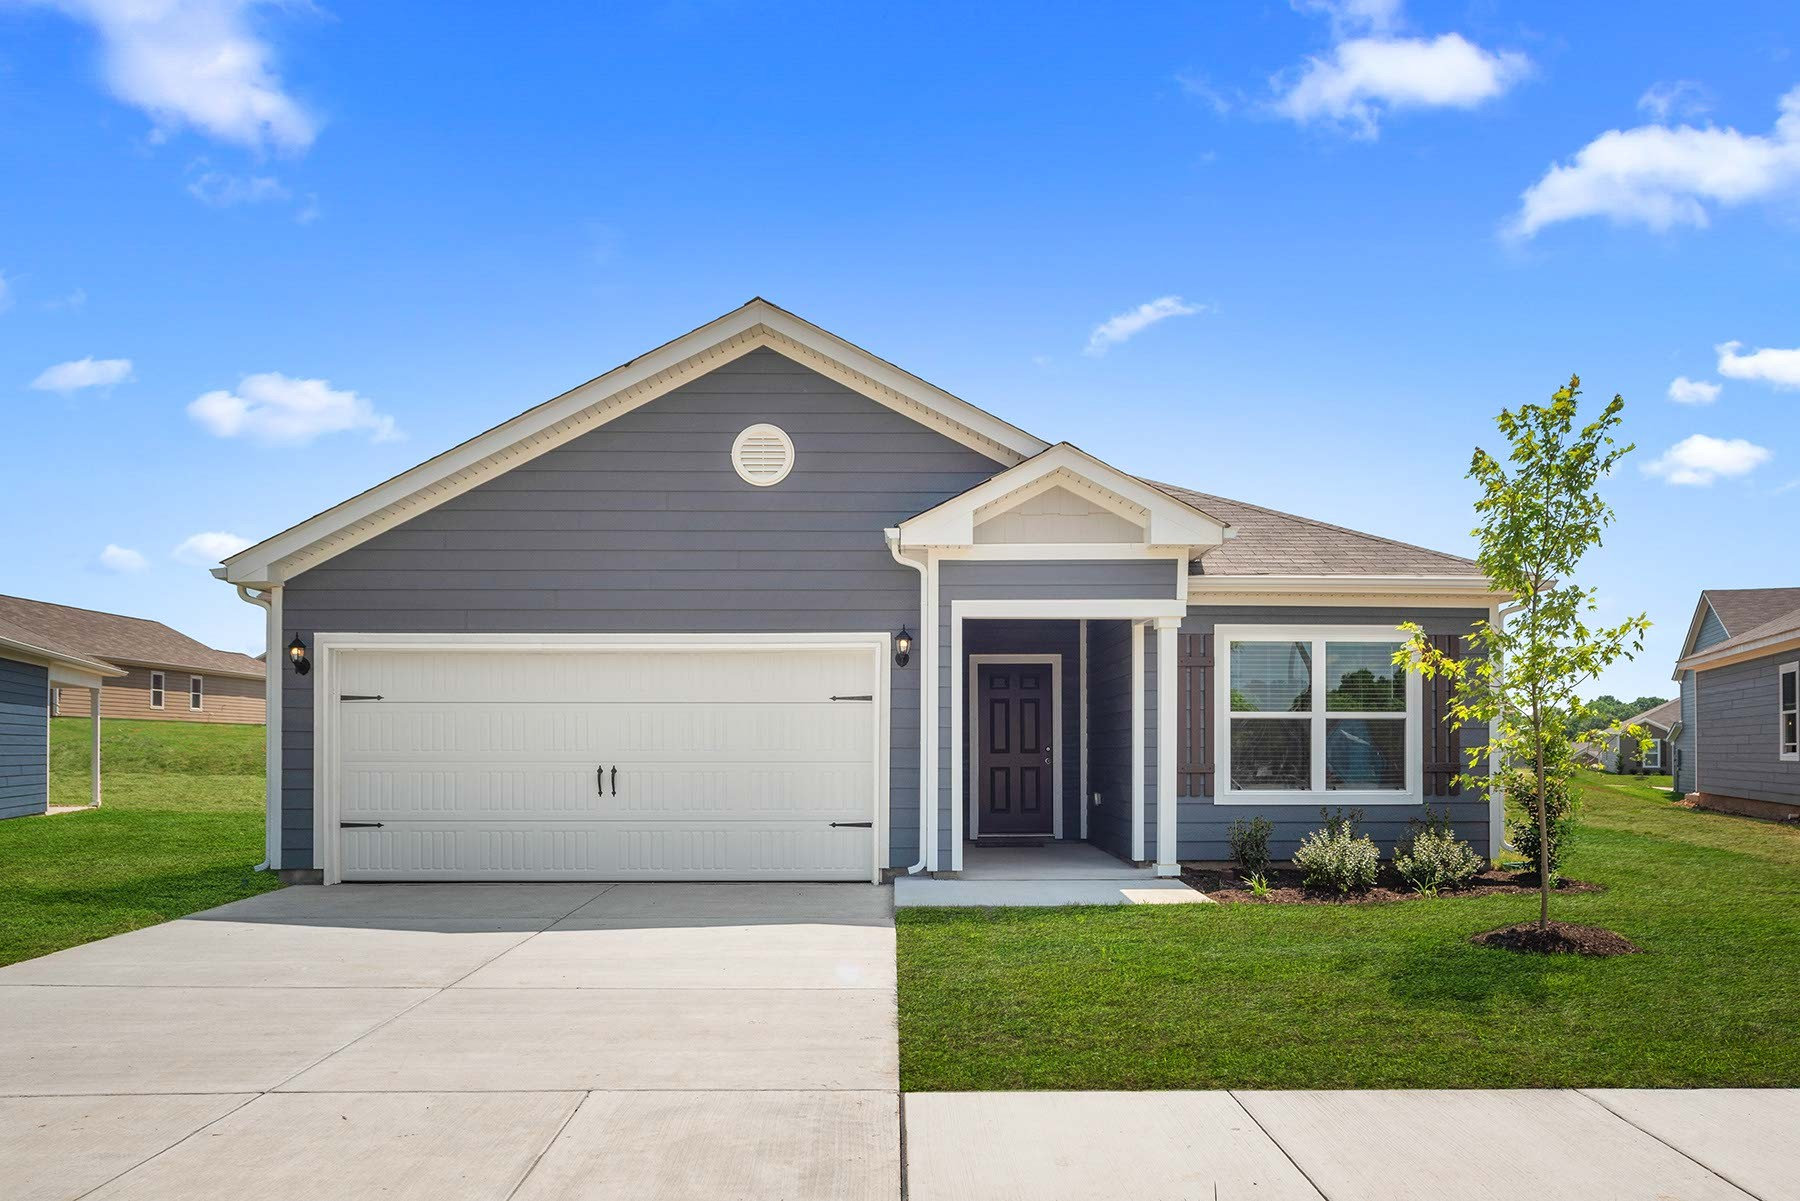 The gorgeous Blanco floor plan can be found in the beautiful community of Honey Farms. This home features an open layout, 3 bedrooms and 2 full baths complete with thousands of dollars in upgrades included at no additional cost. Included in this home is also a covered patio and a beautifully landscaped front yard